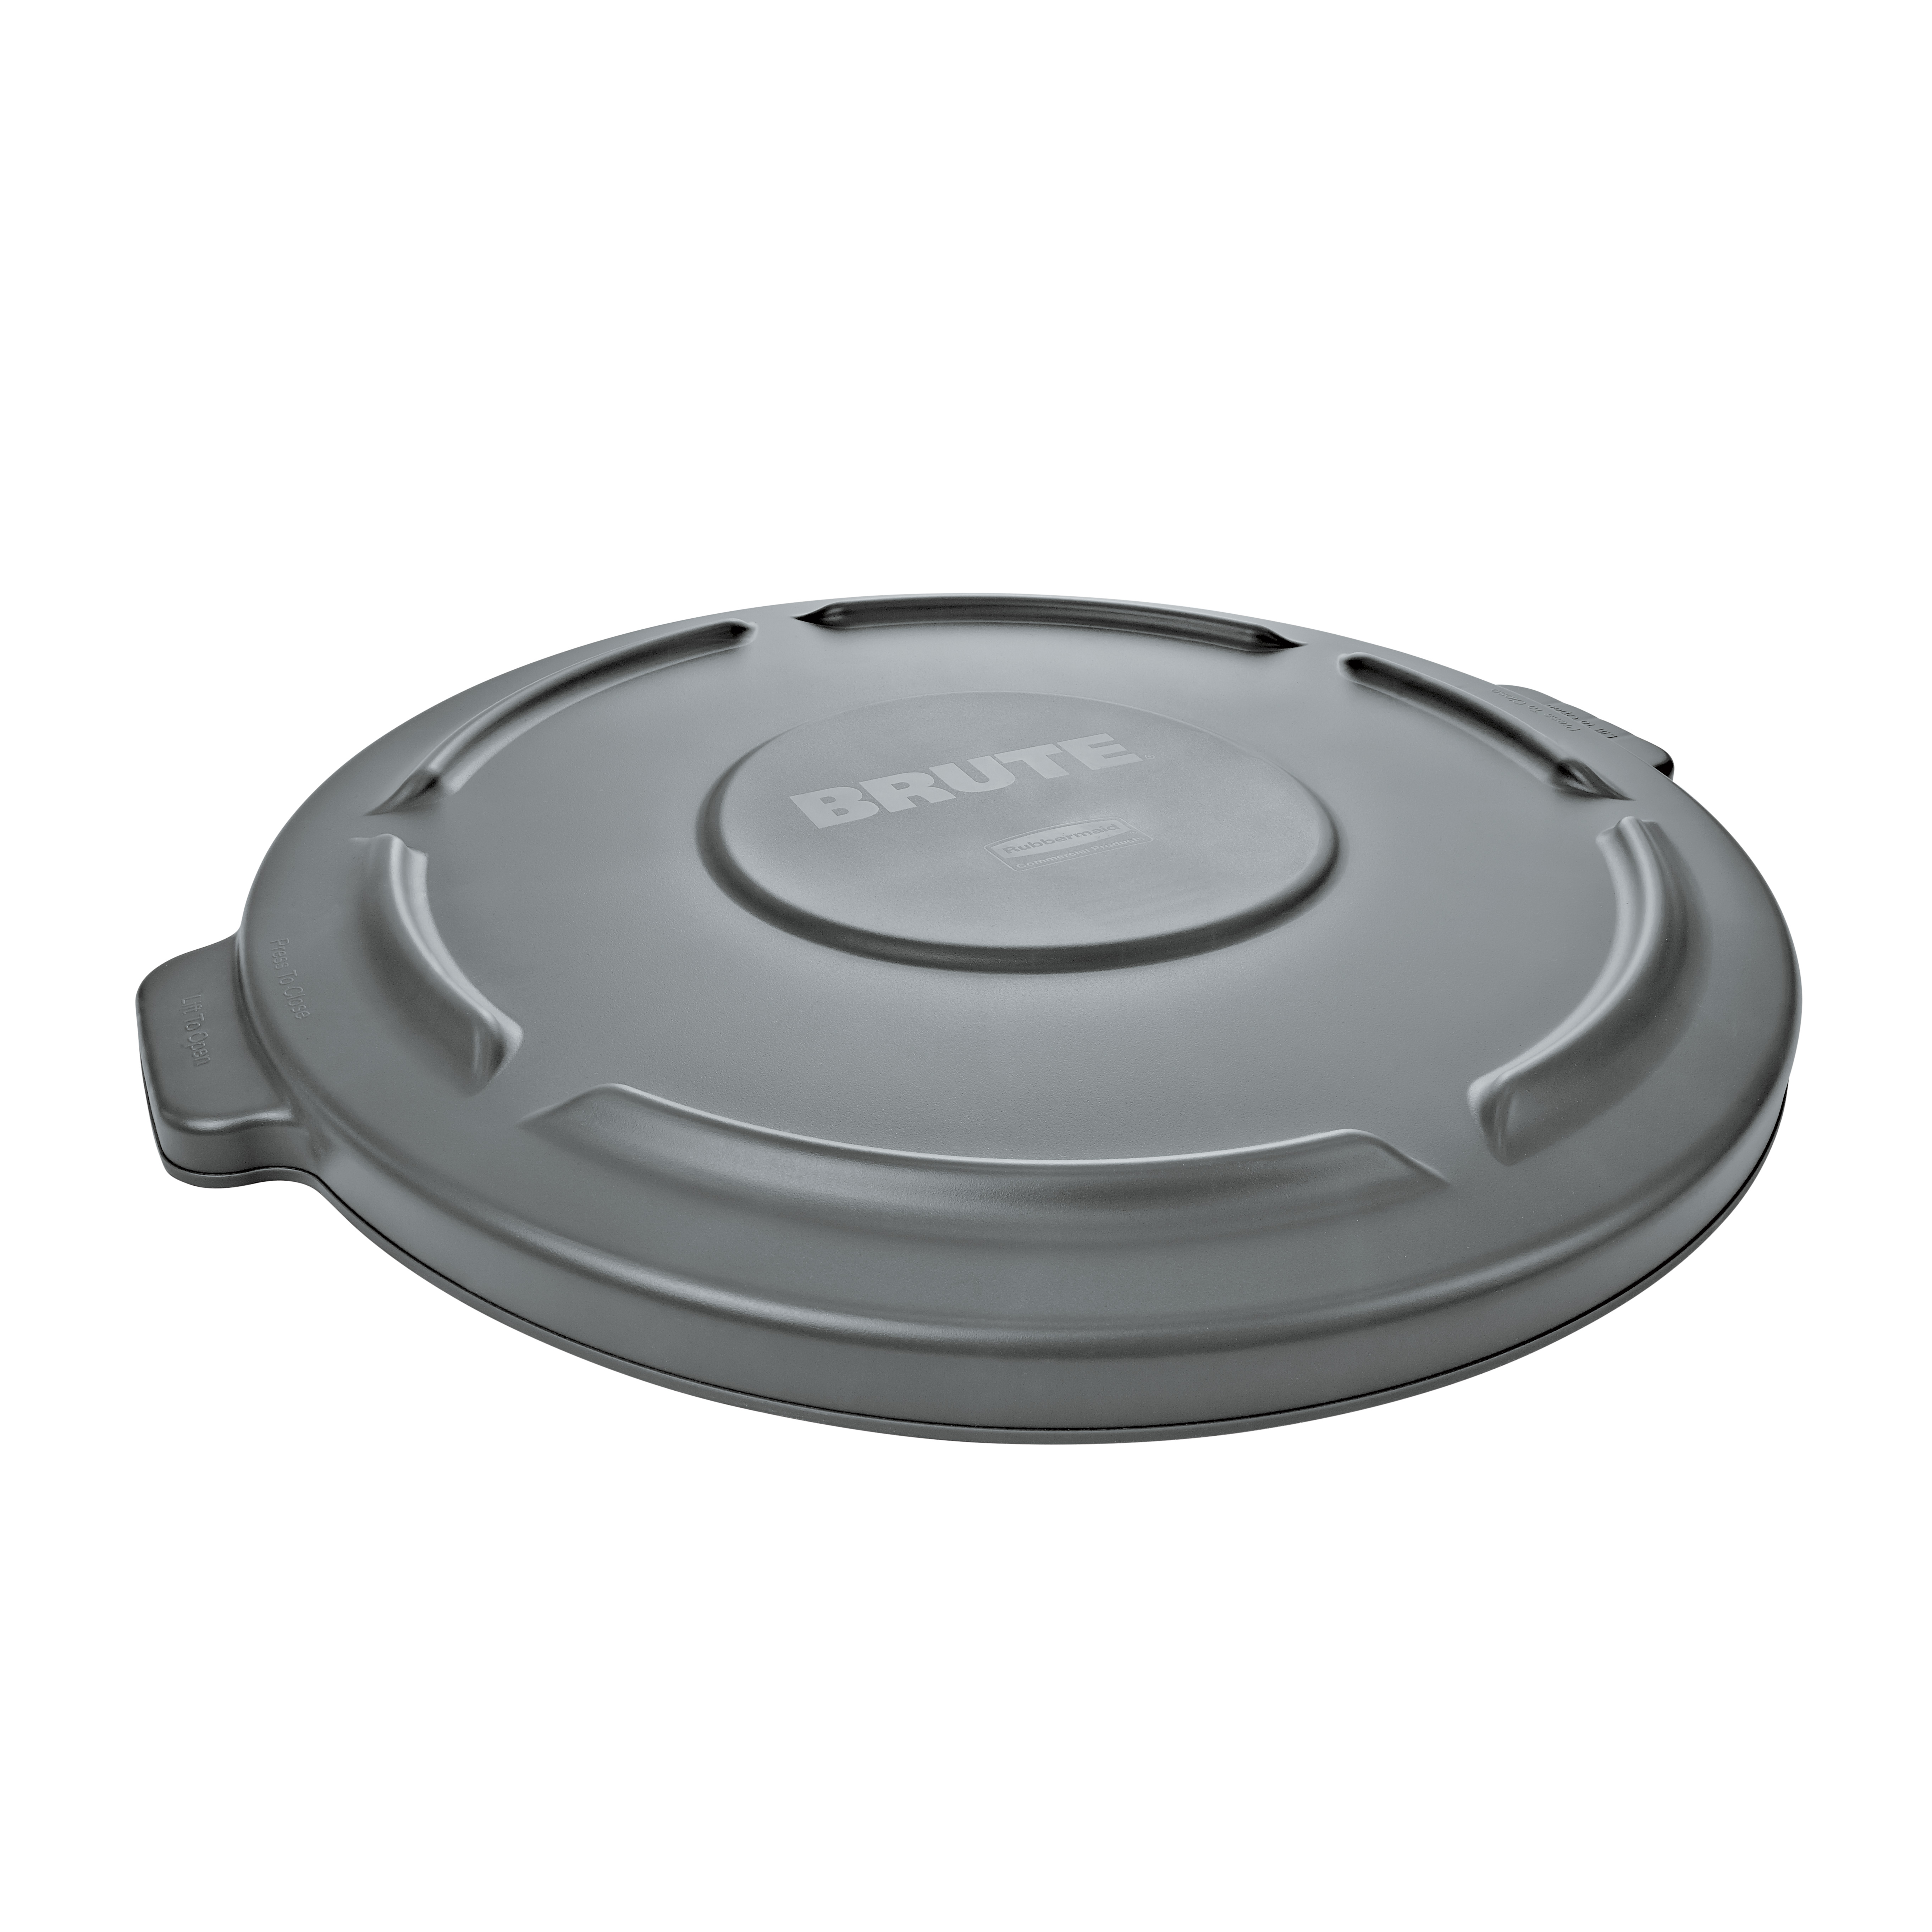 Rubbermaid Commercial Products FG261960GRAY trash receptacle lid / top